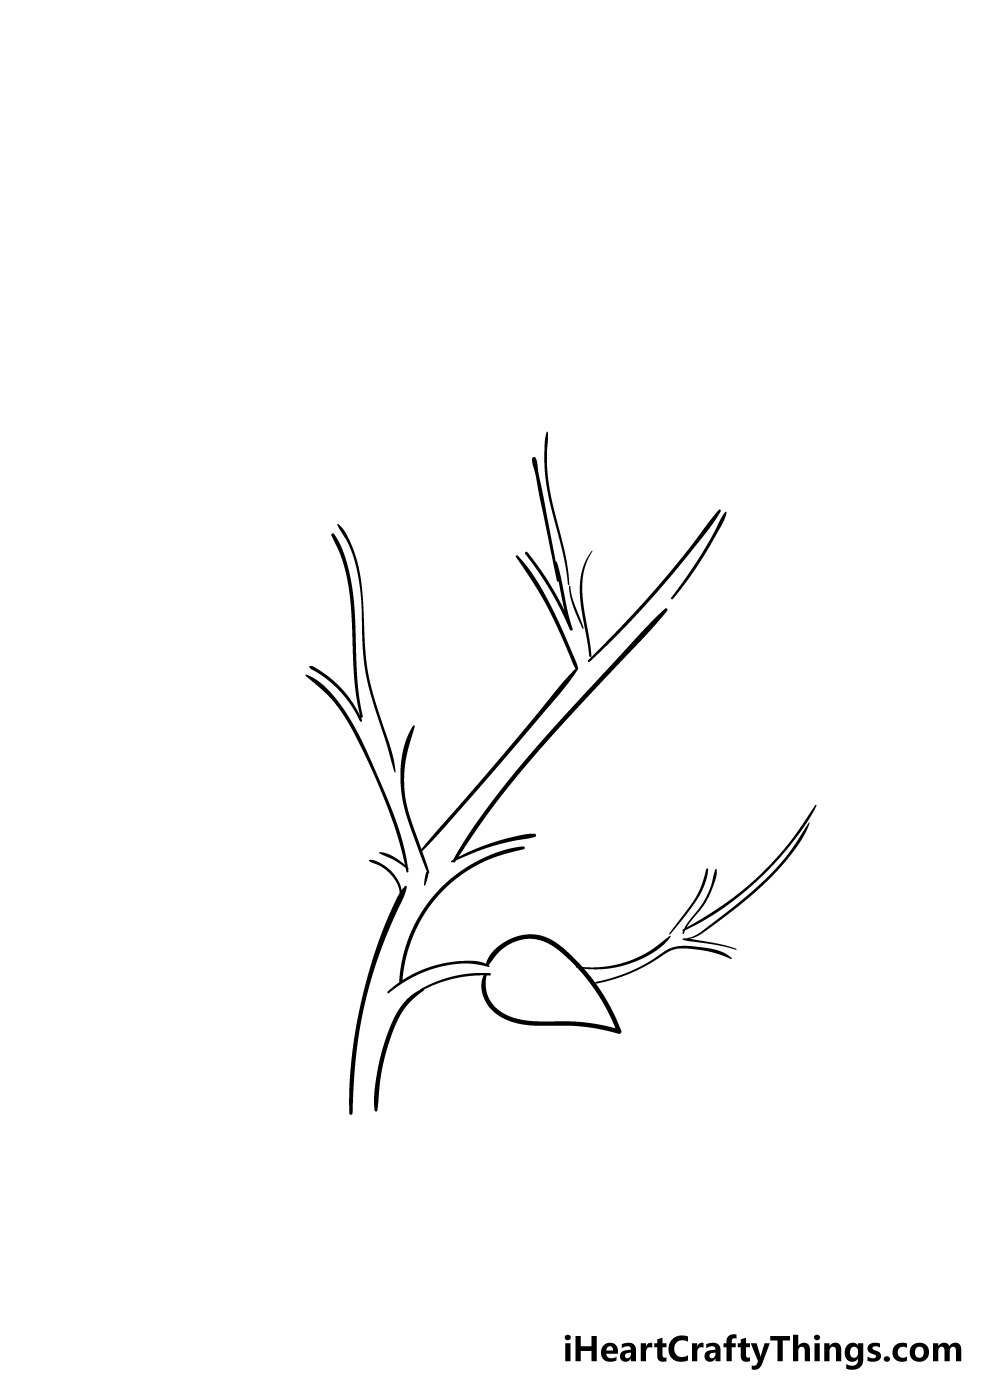 leaves on a tree drawing step 3